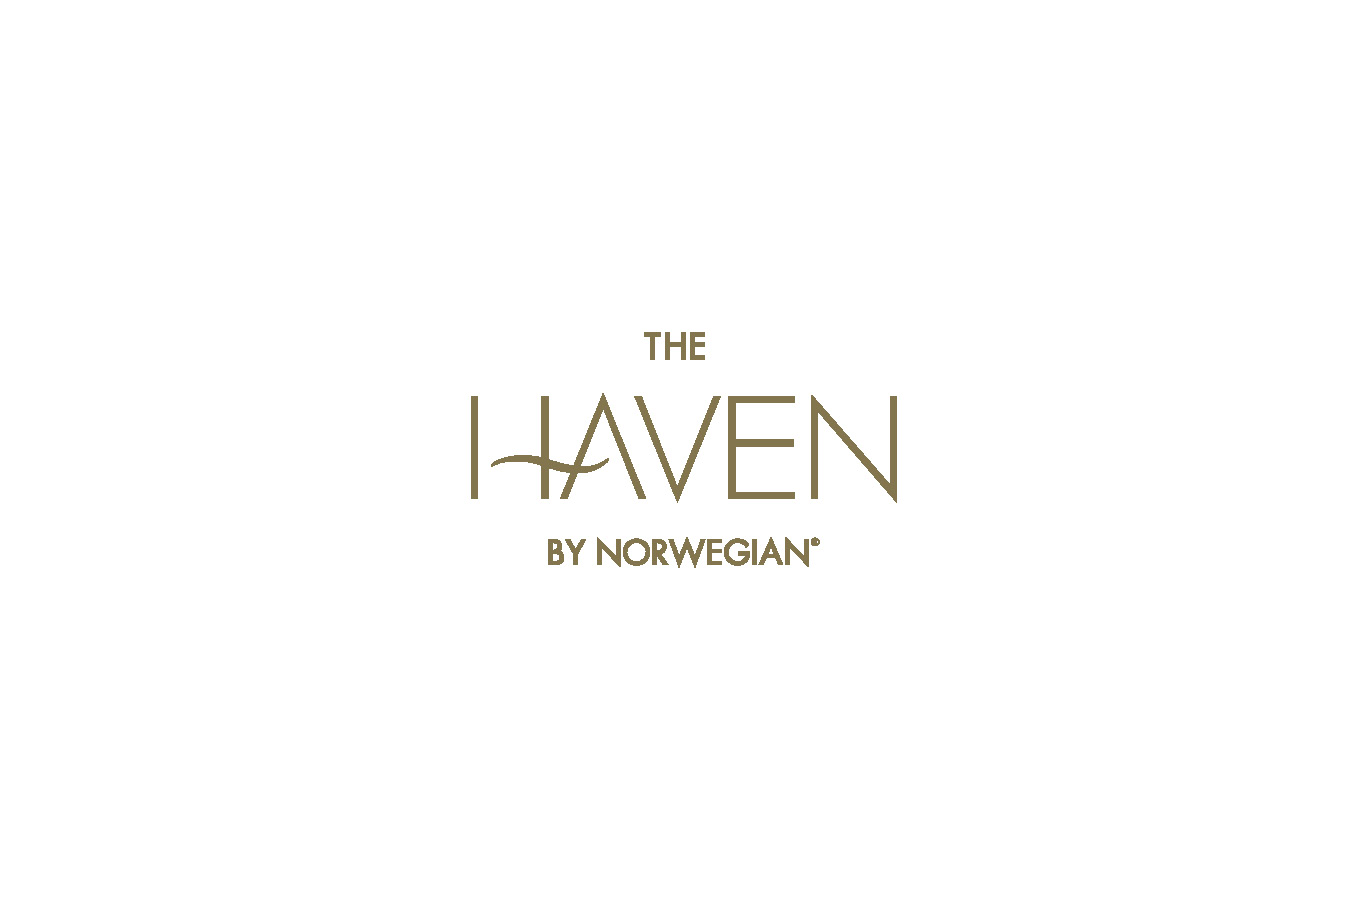 Catalogo Norwegian The Haven 2017-2019